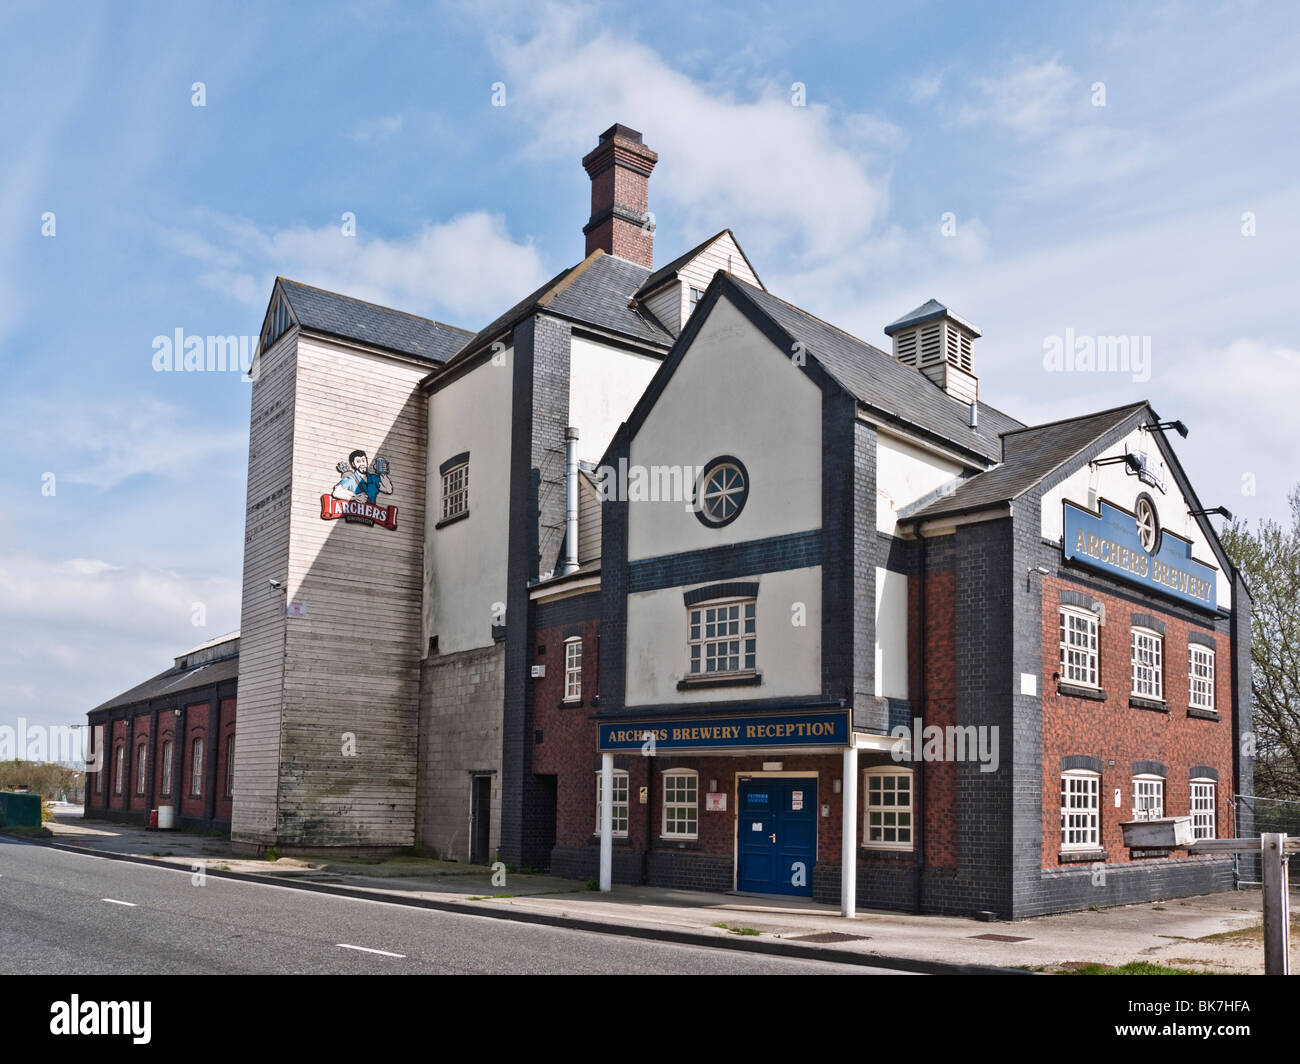 Archers brewery building, Penzance Drive, Swindon, UK. Disused 1 year after the company went into administration - Stock Image